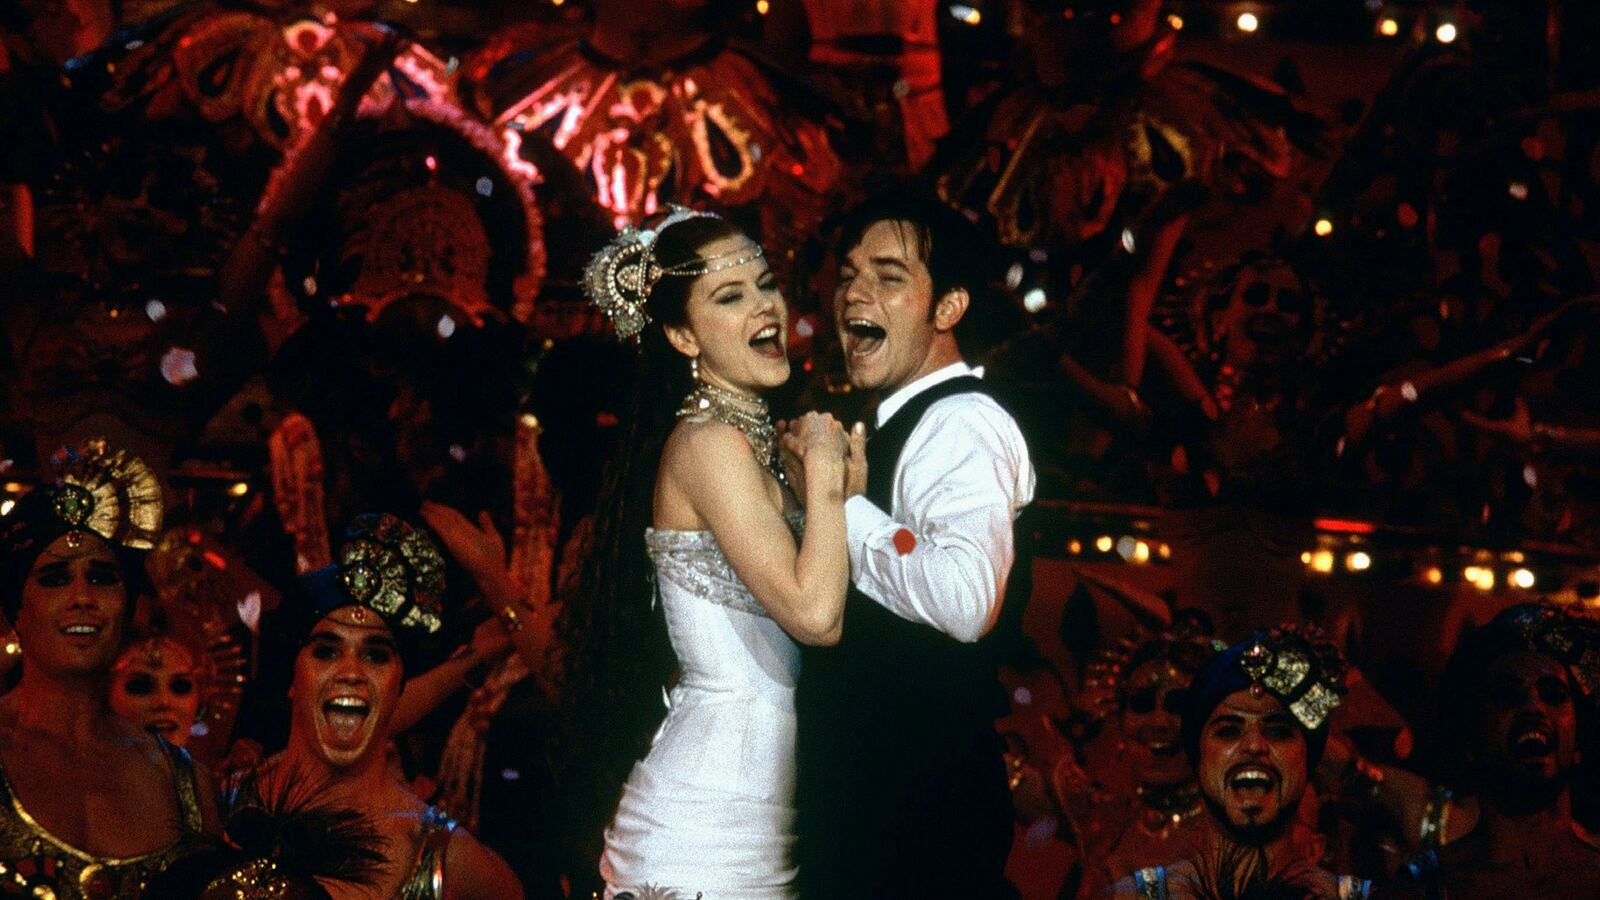 Film still from Moulin Rouge (2001)